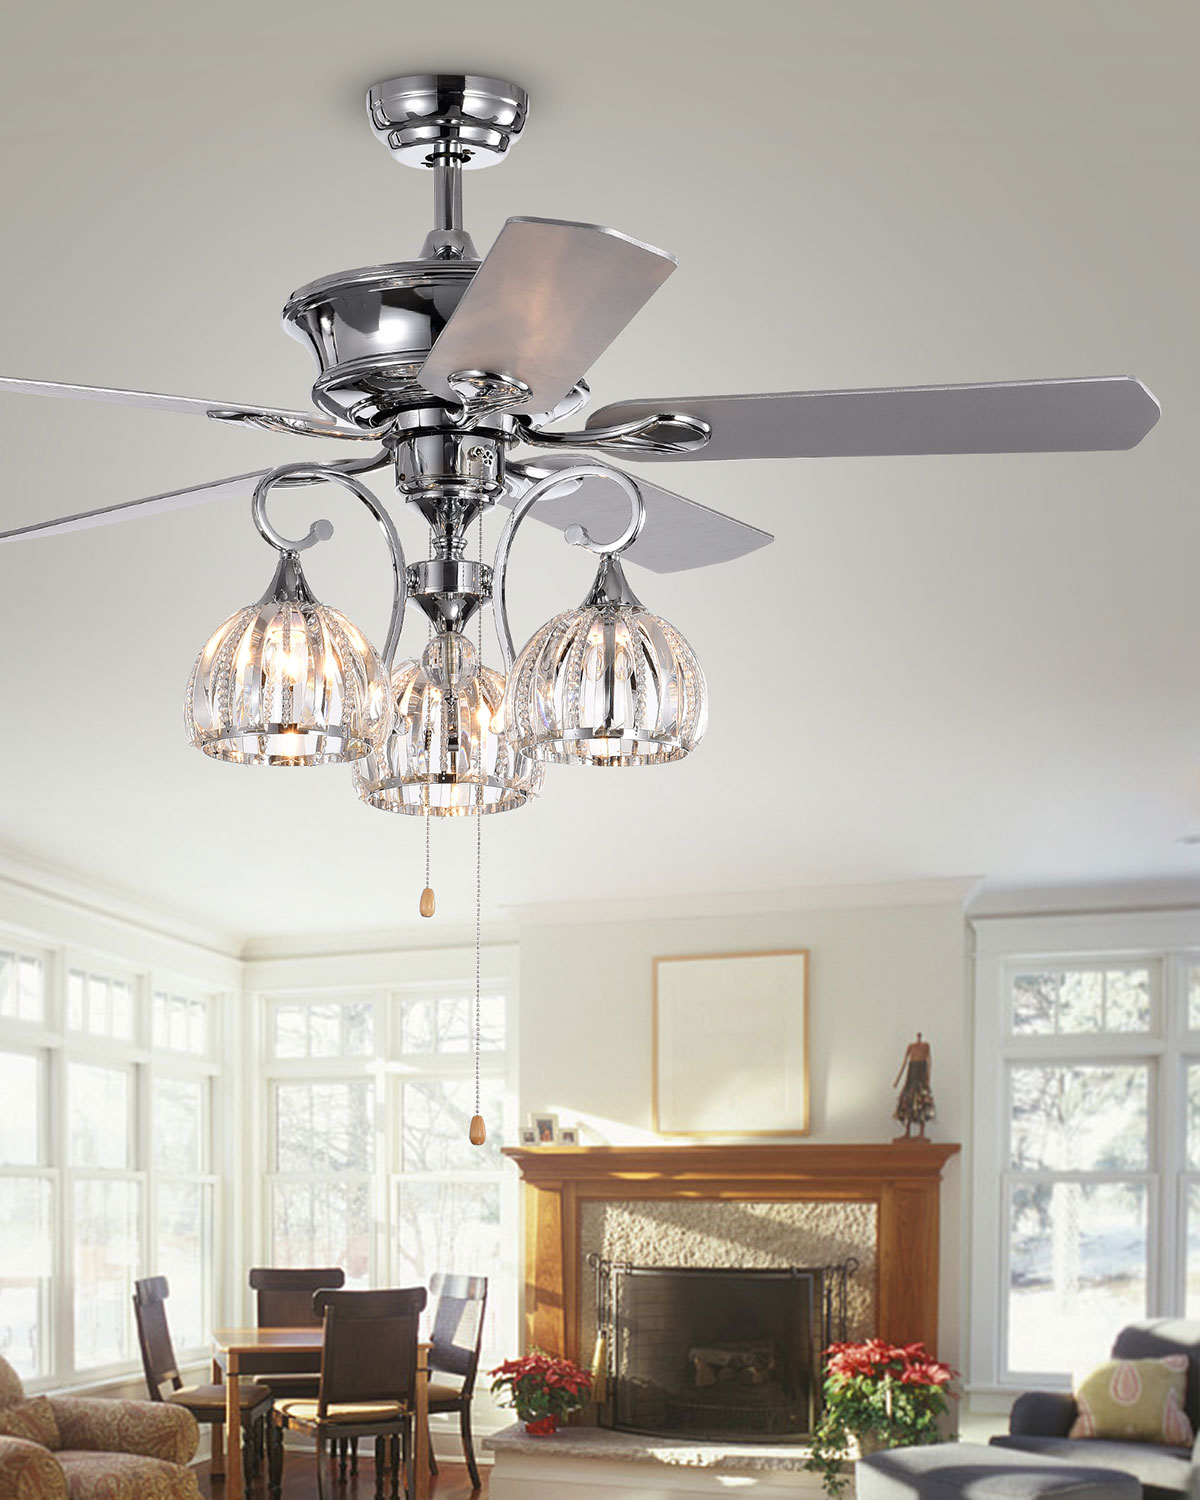 Nickel Finished Ceiling Fan With Light Kit